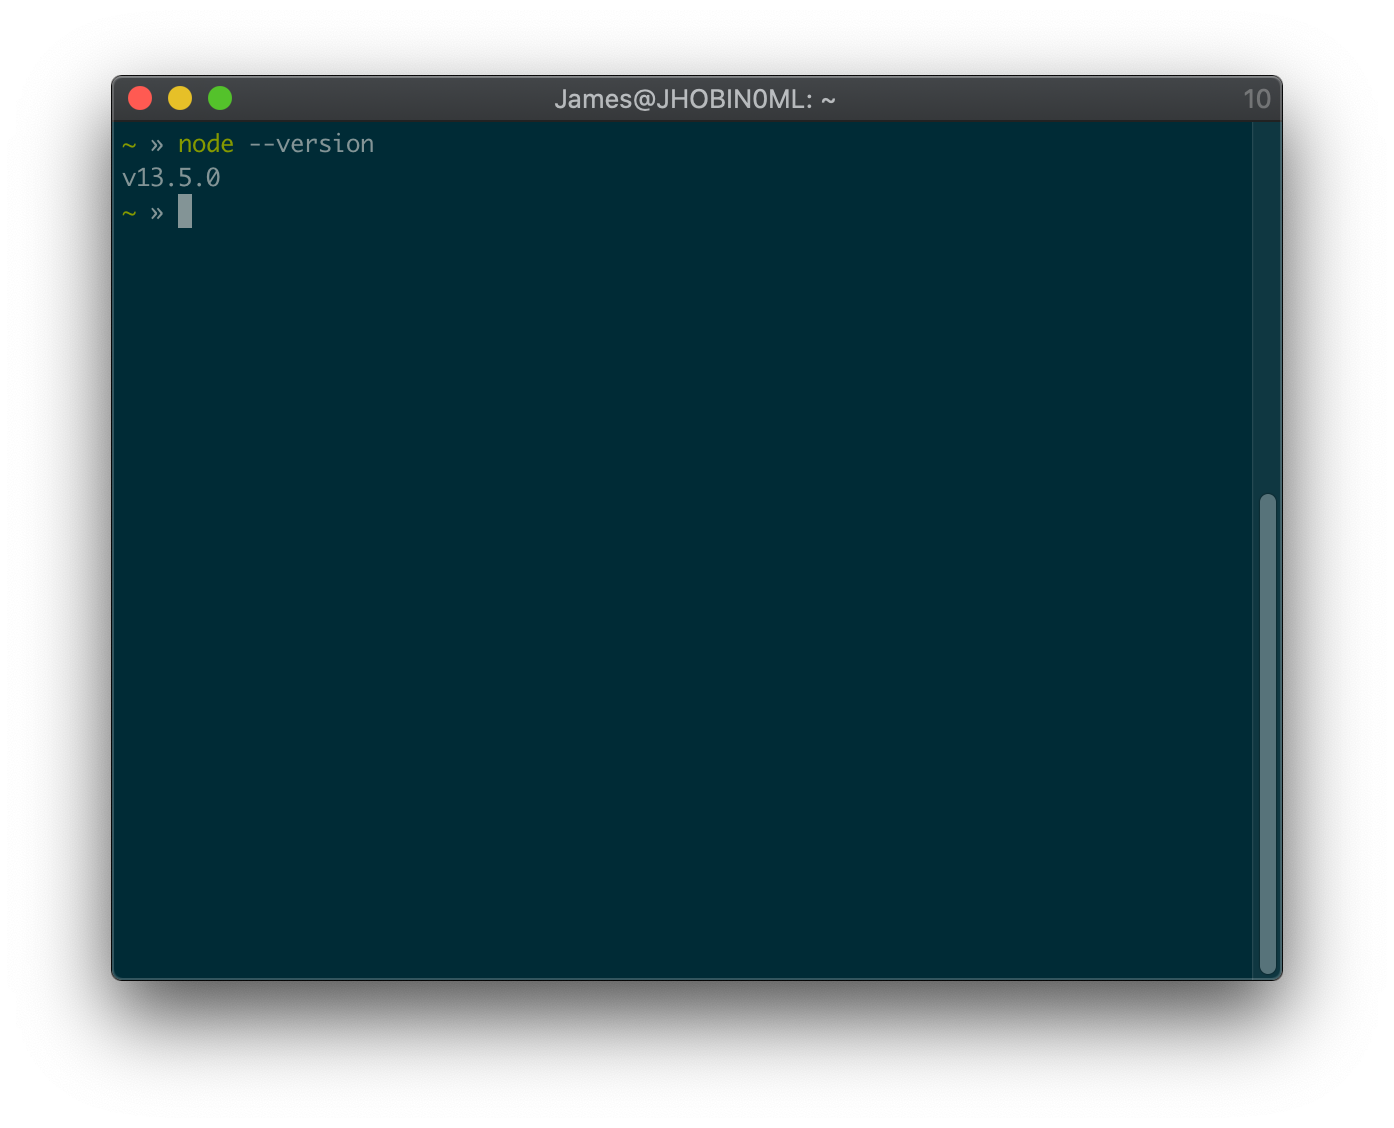 Terminal with the command node --version run, it outputs v13.5.0 without errors